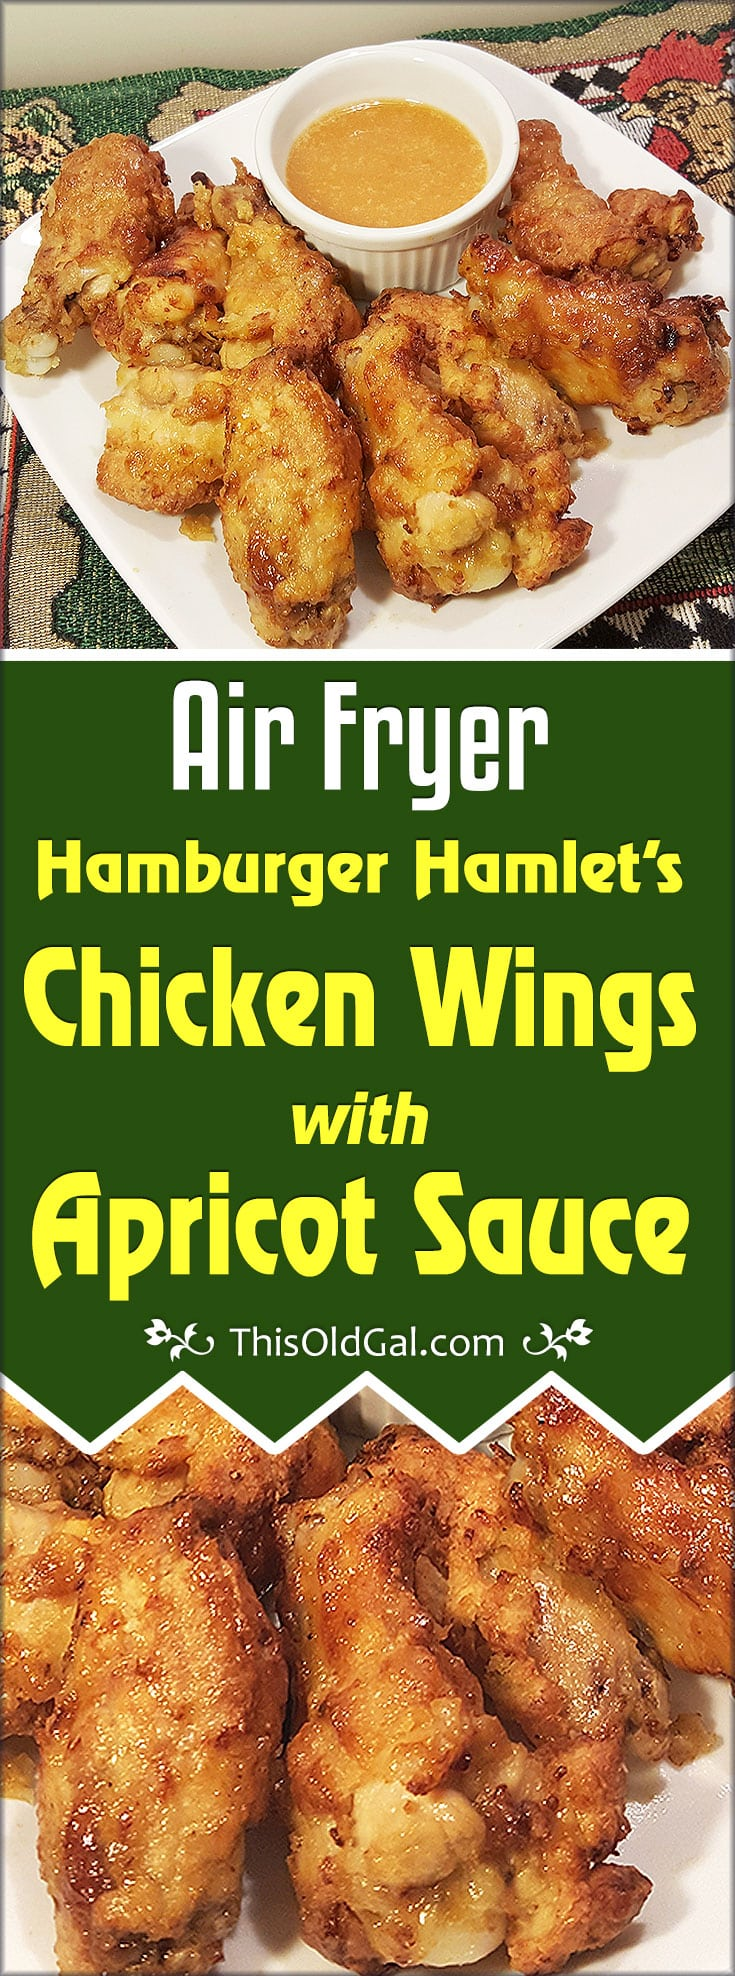 Air Fryer Hamburger Hamlet Fried Chicken Wings w/Apricot Sauce